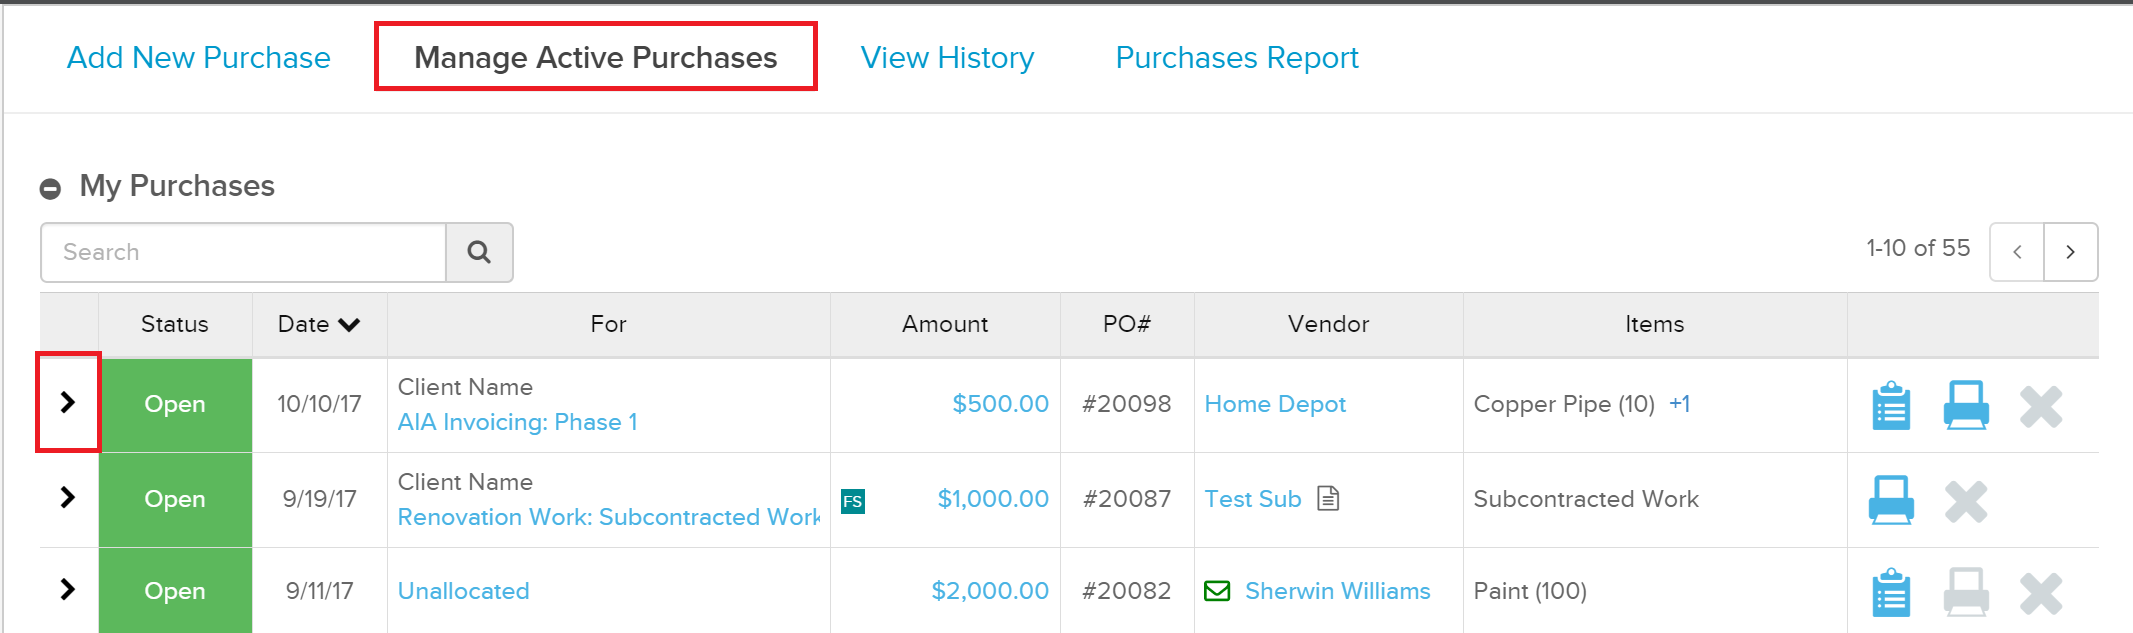 ManageActivePurchases Managing Purchase Orders in Knowify